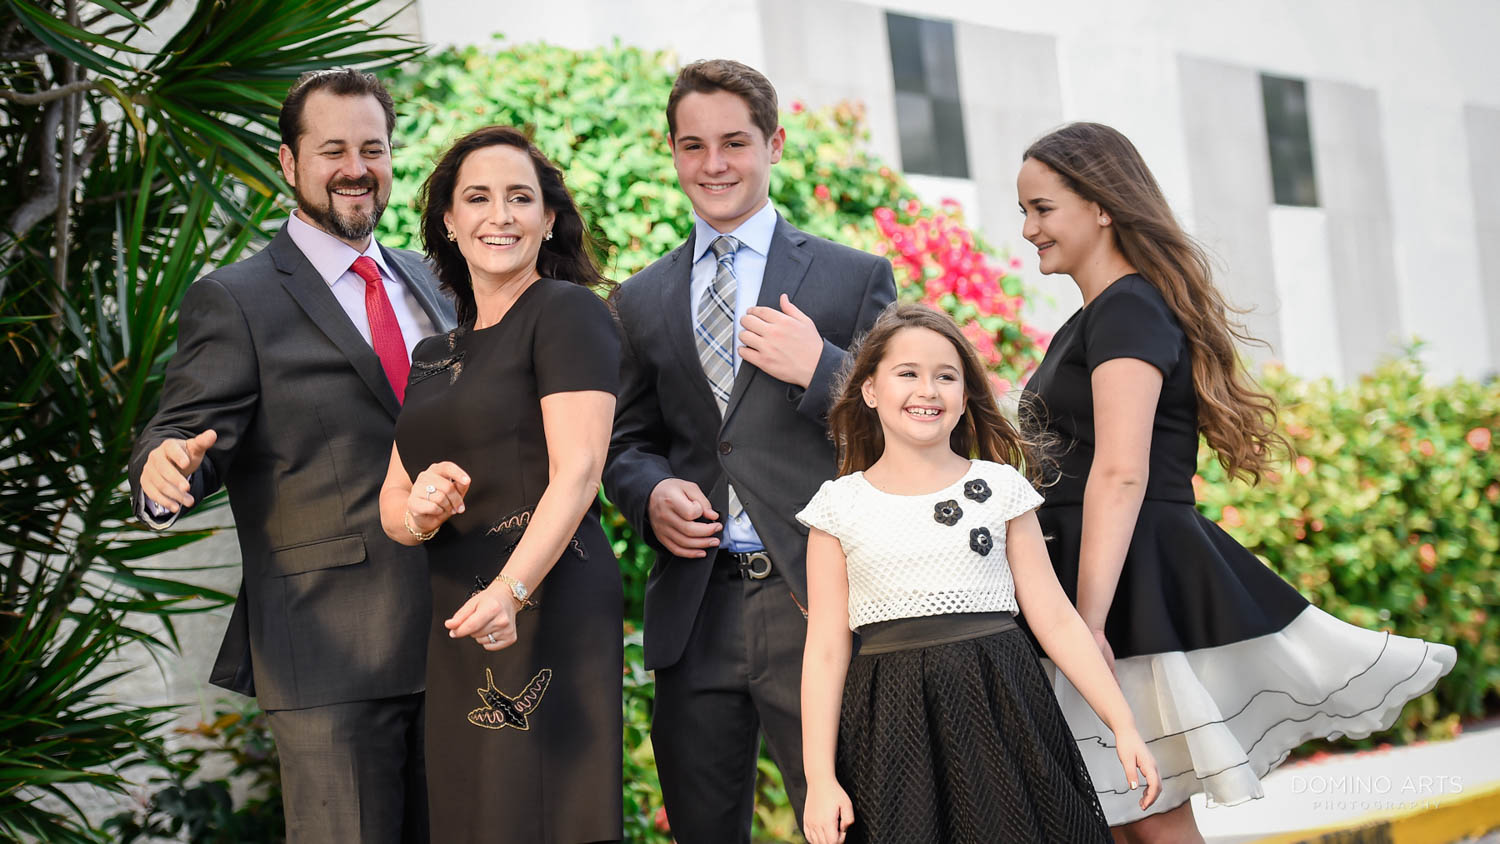 Family pictures at Luxury Beach Mitzvah Photography at Marriott Harbor Beach